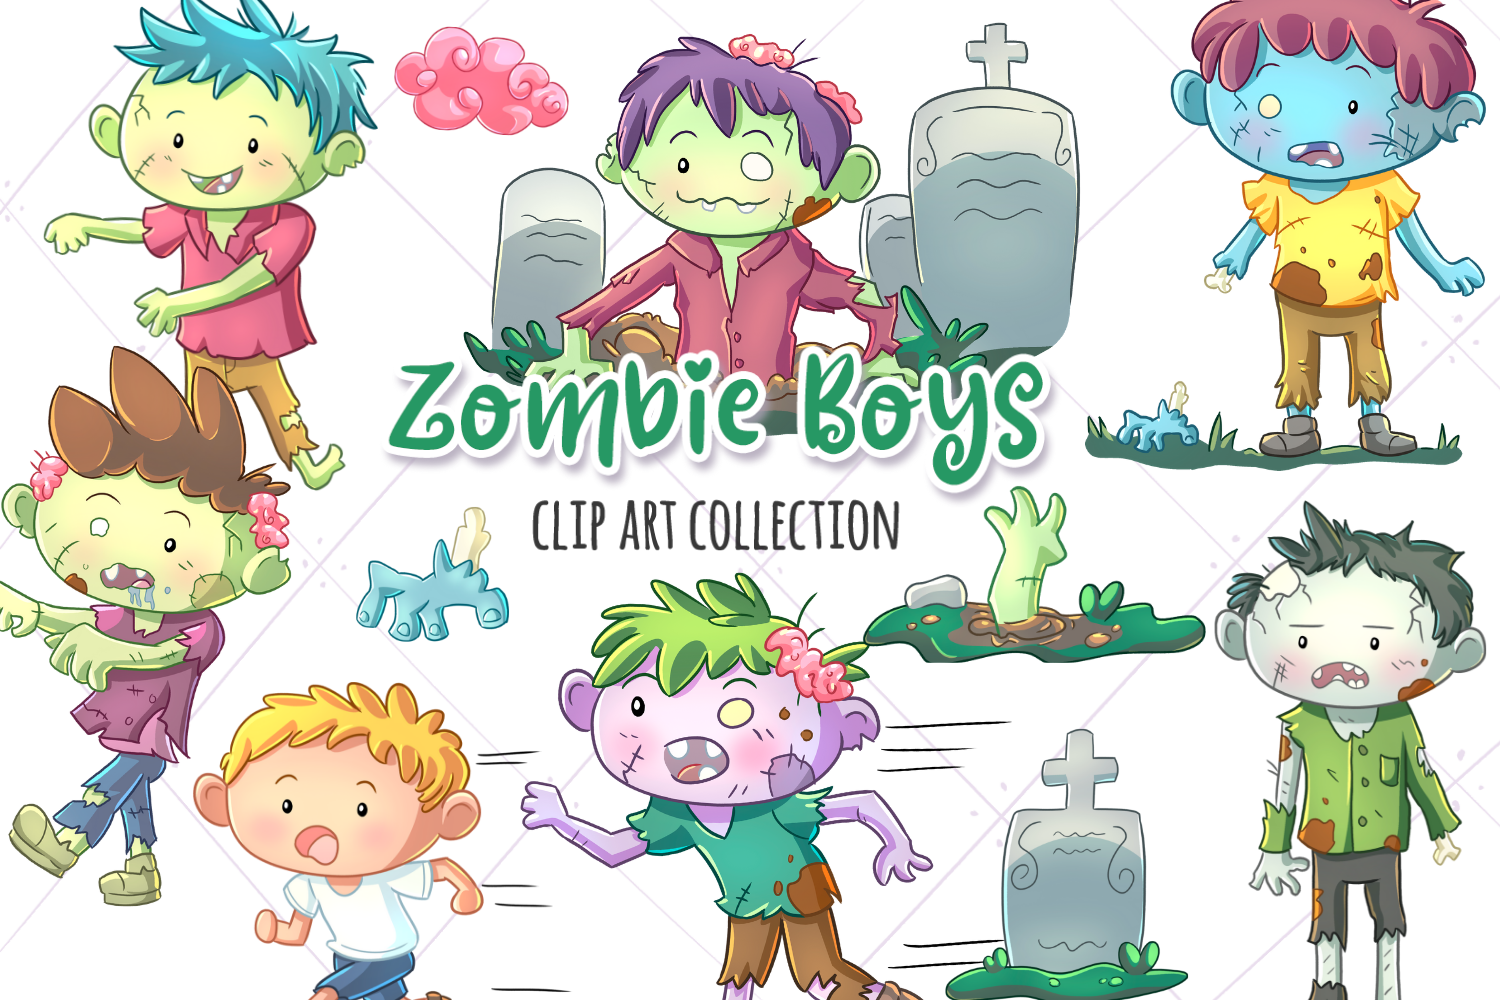 Zombie Boys Clip Art Collection (Graphic) by